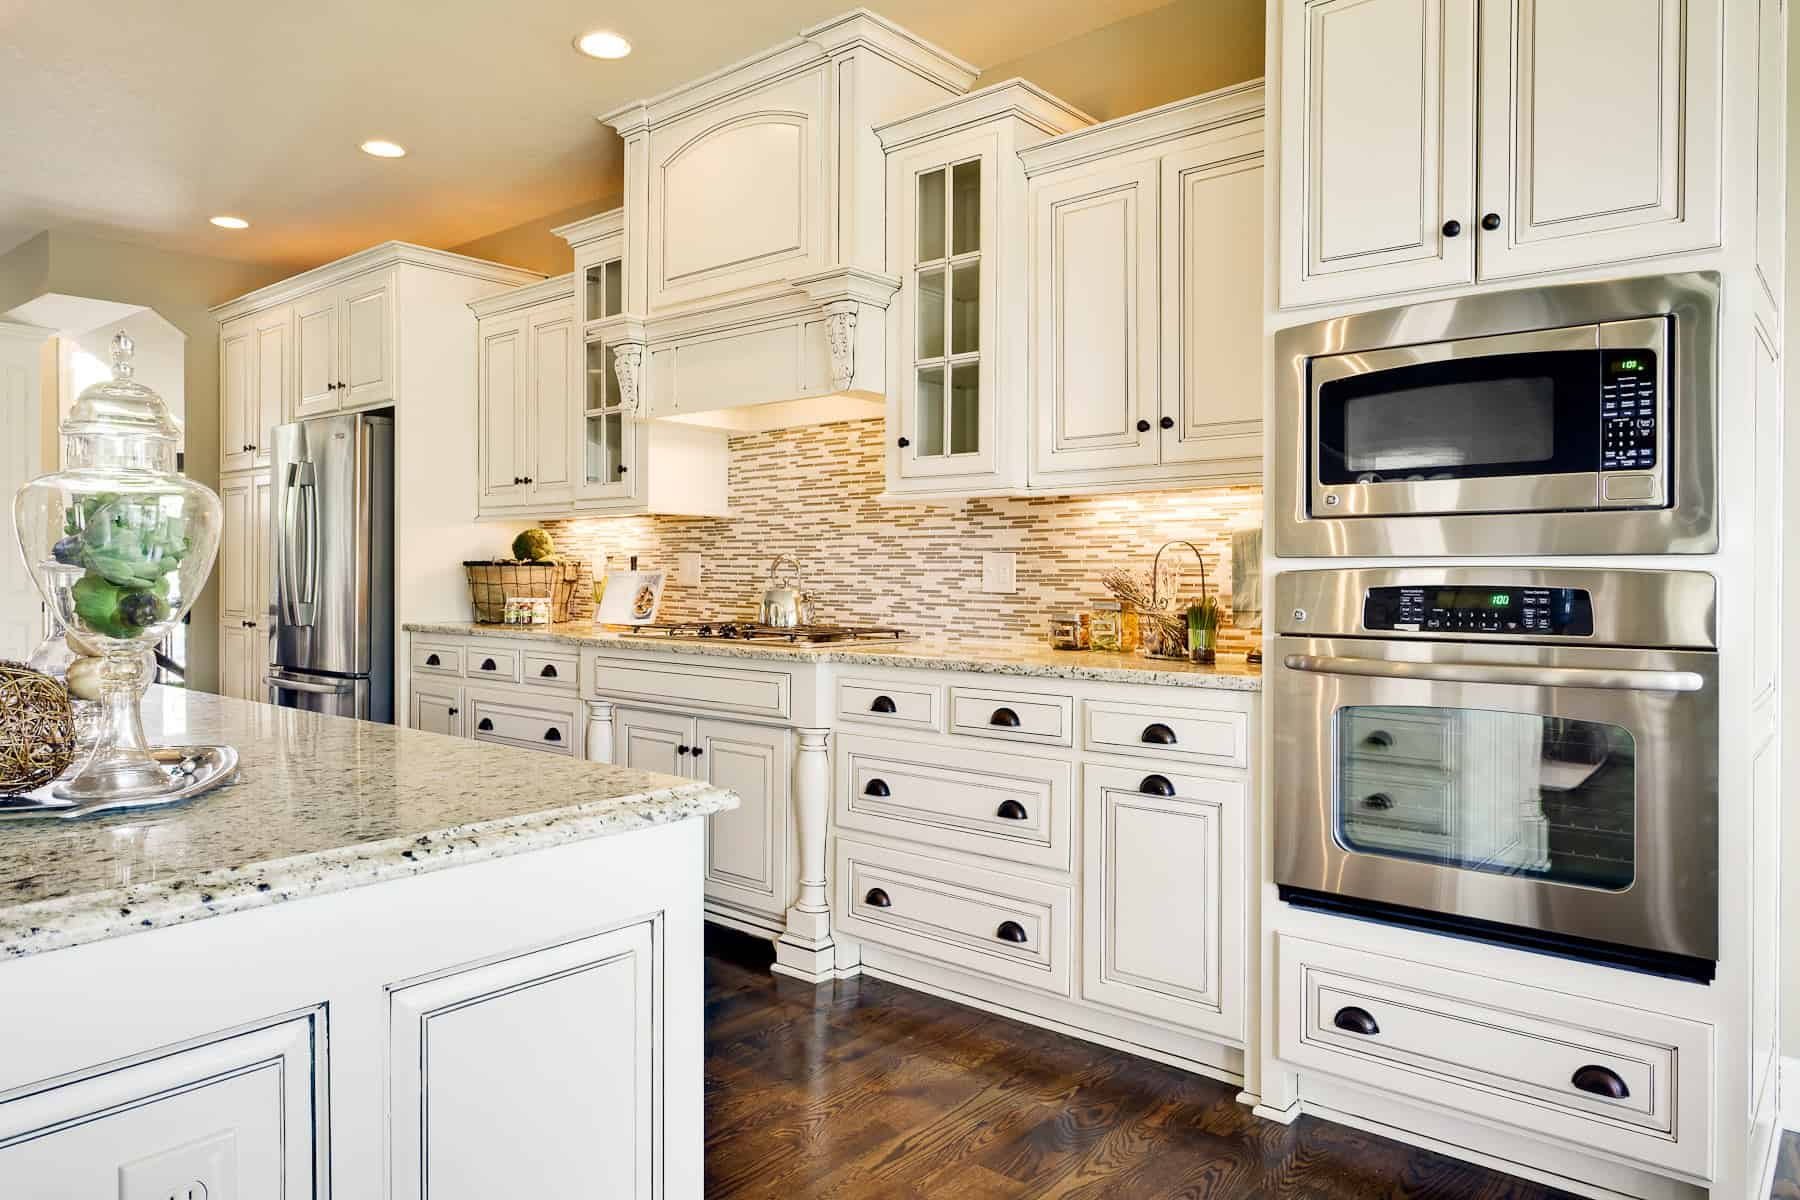 granite countertops cost granite countertops kitchen Granite Countertops Cost Factors